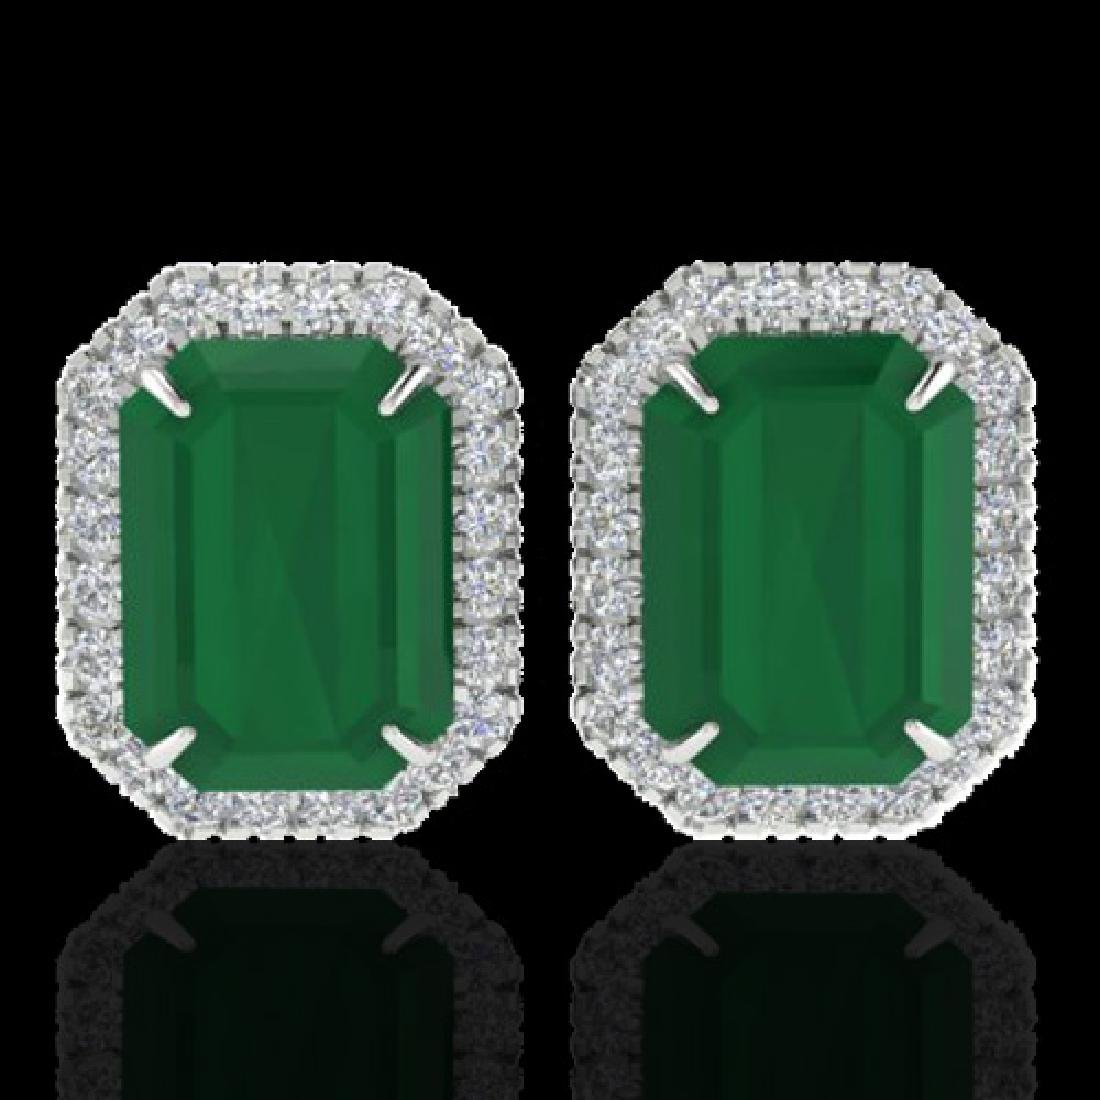 10.40 CTW Emerald & Micro Pave VS/SI Diamond Halo